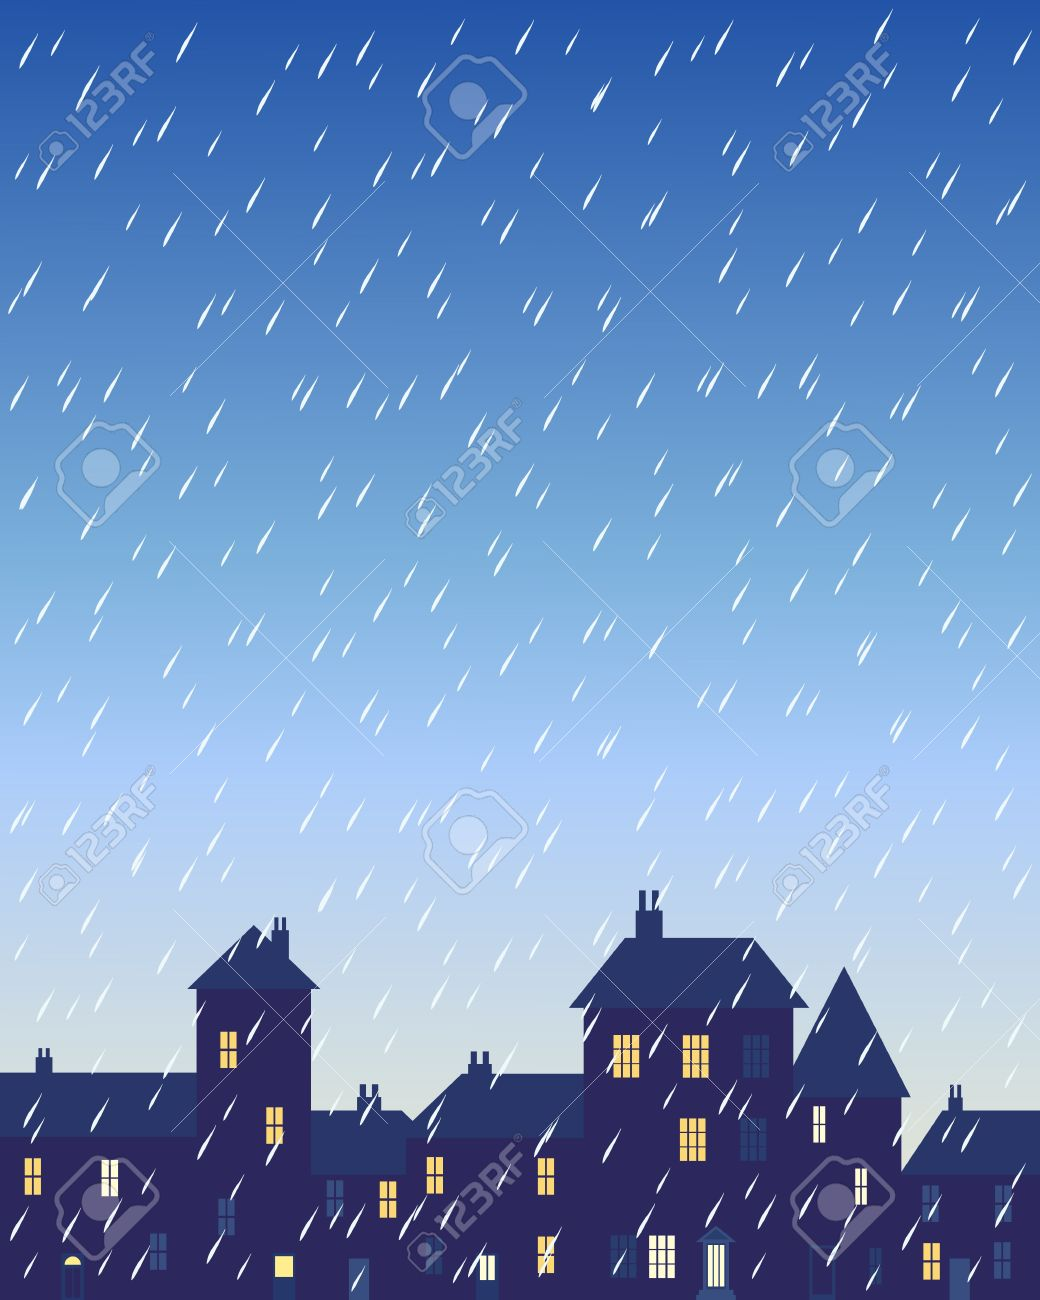 an illustration of a rainy day in a city with various shaped buildings and houses with lighted windows under a stormy sky Stock Vector - 16646042